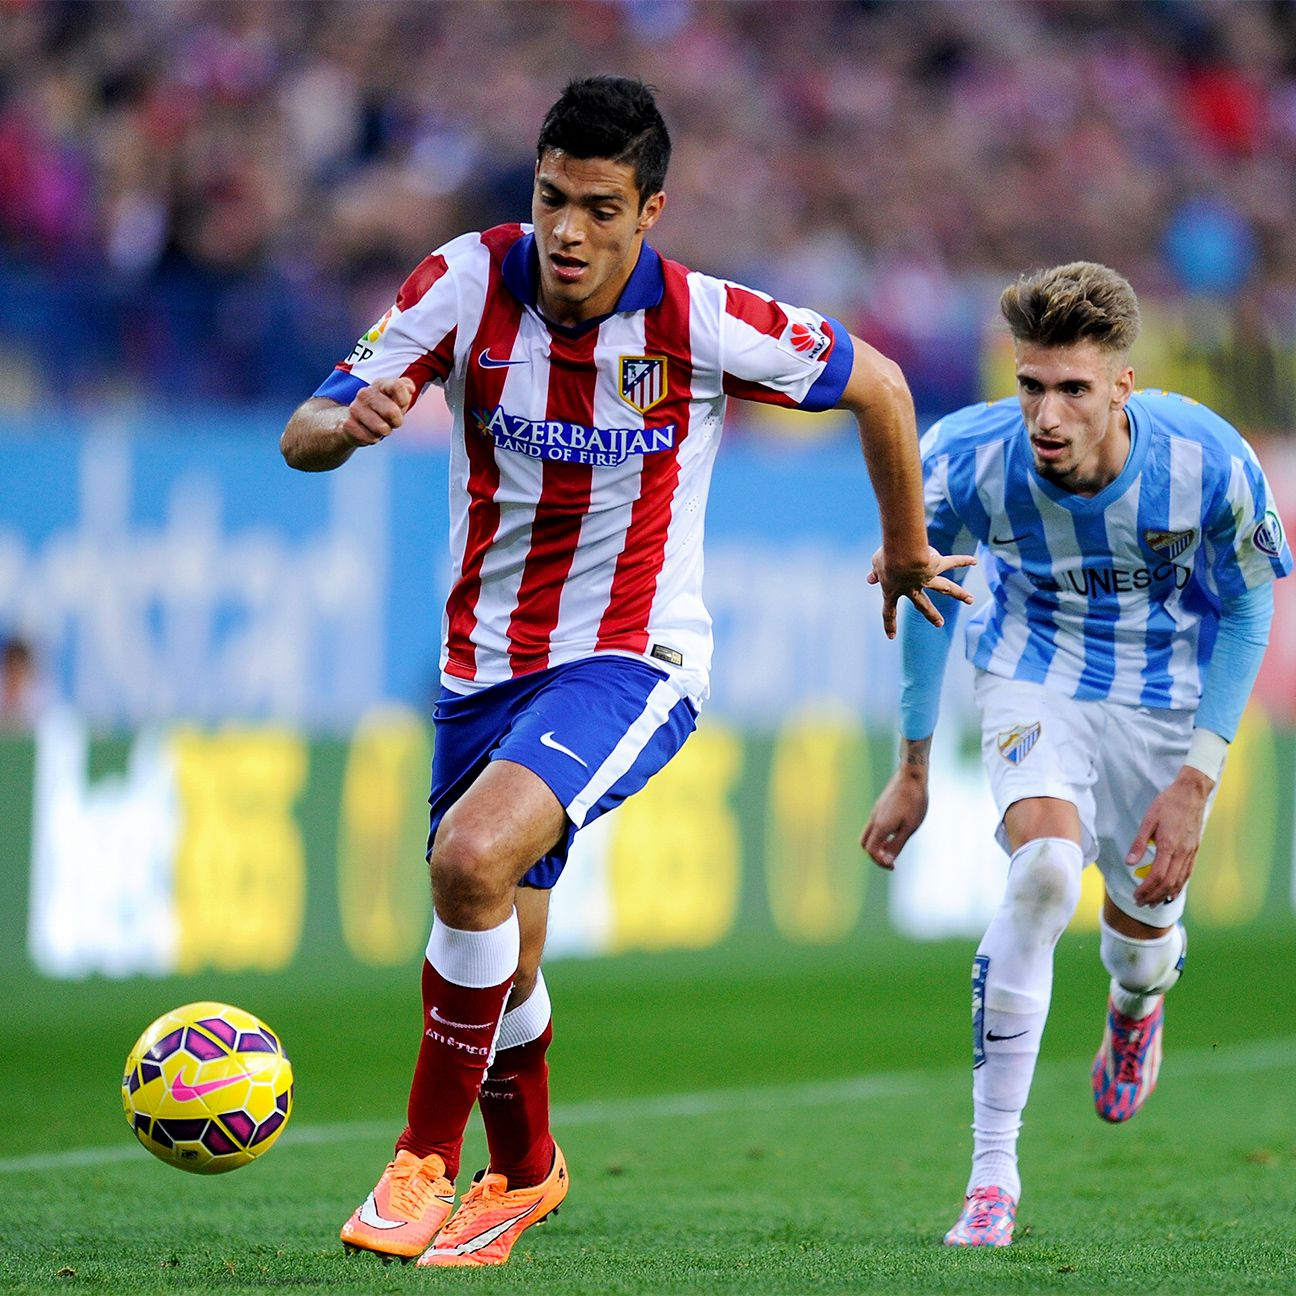 Raul Jimenez's last start for Atletico was last month in a Copa del Rey match versus Segunda B side  Hospitalet.